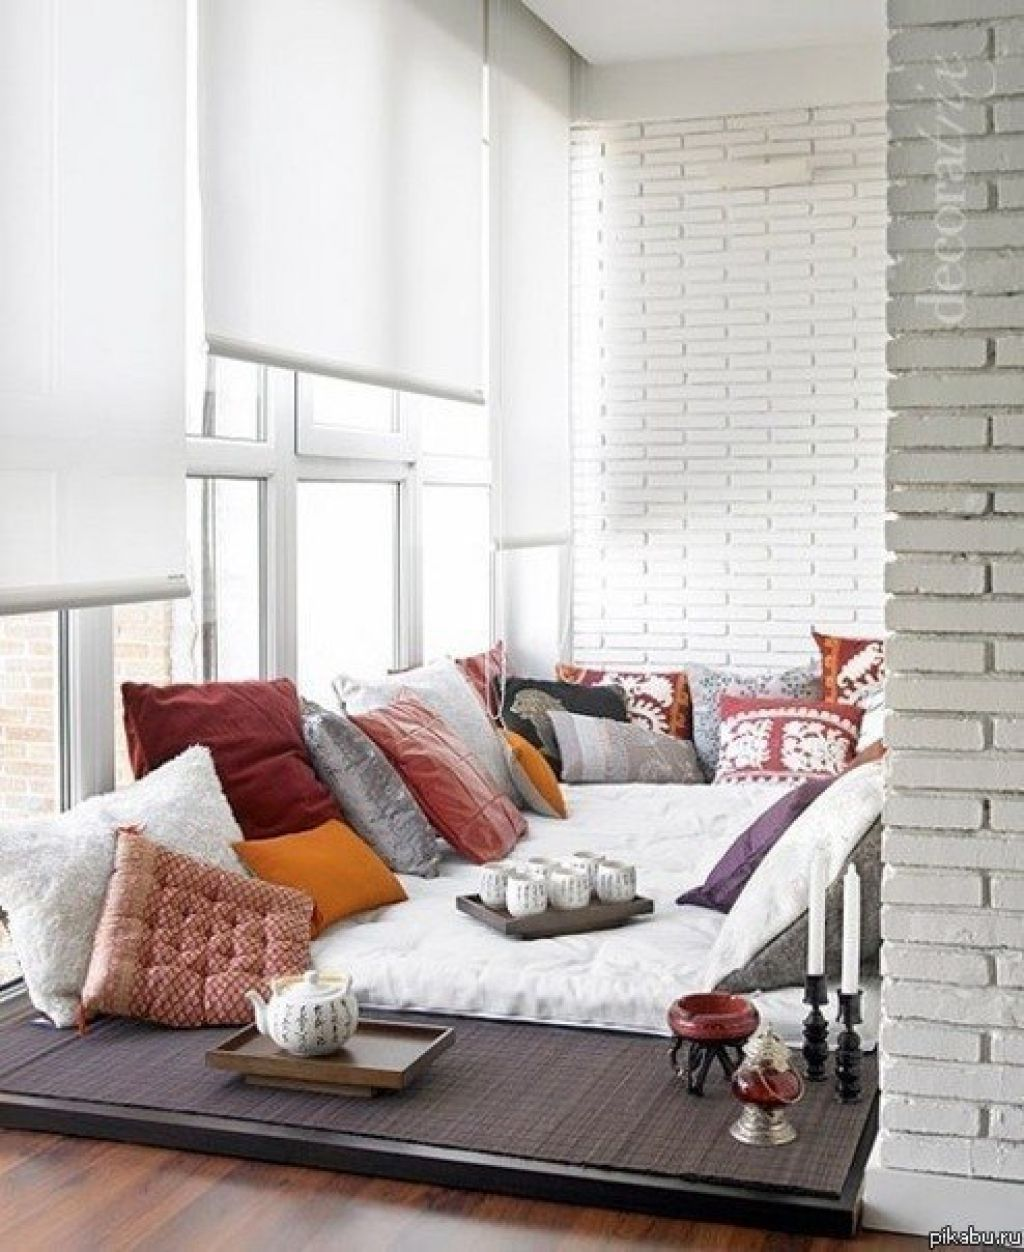 Comfy Floor Seating How To Design And Lay Out A Small Living Room Floor Seating Living